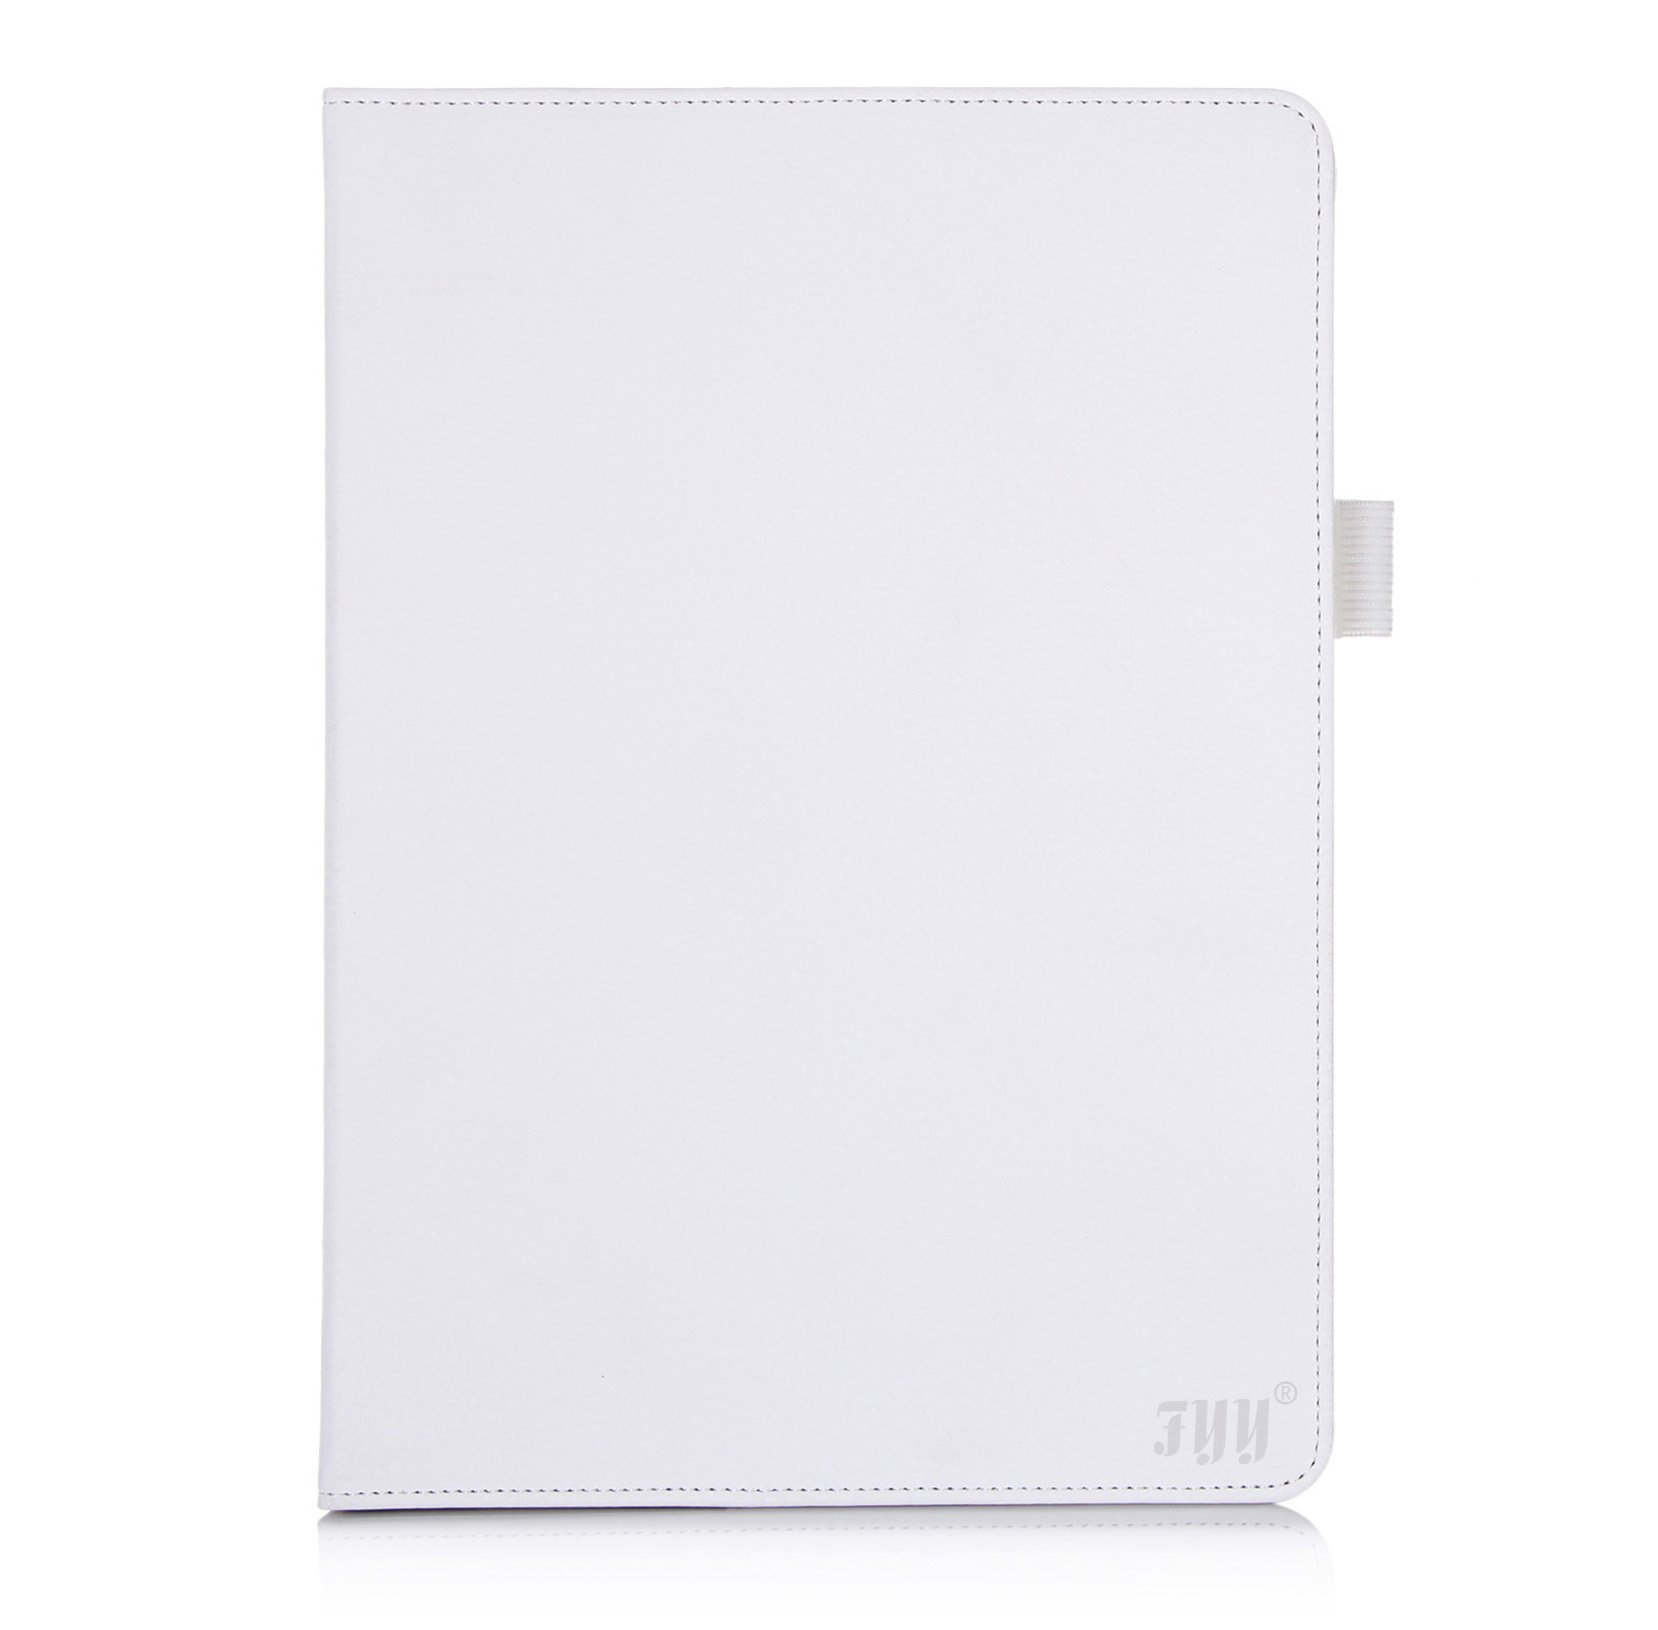 FYYCase for Apple iPad Air - Premium Leather Case Smart Cover with Card Slots, Pocket, Elastic Hand Strap and Stylus Holder for Apple iPad 5 (Apple iPad Air 2013) White (With Auto Wake/Sleep Feature)